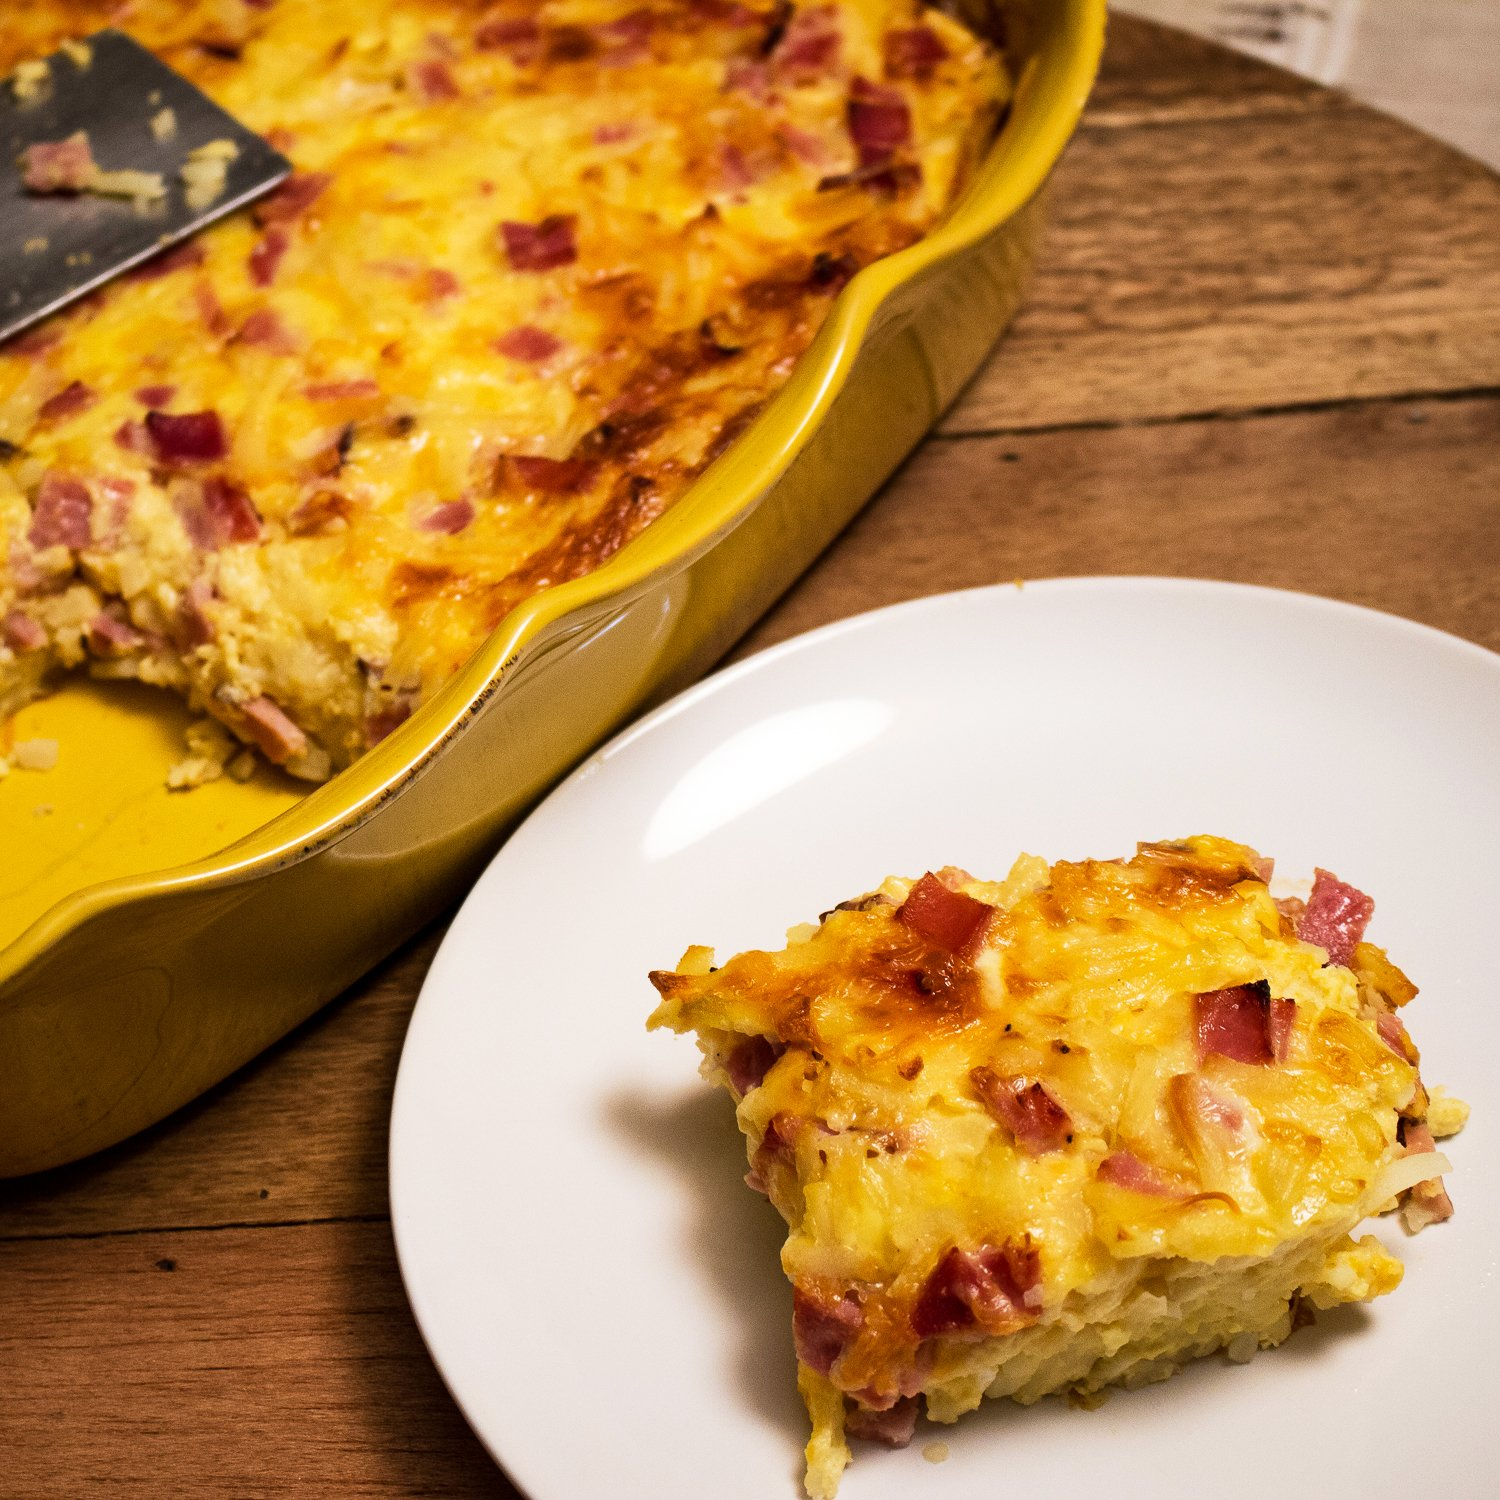 Delicious breakfast recipe- Cheesy Ham Hash Brown Egg Casserole- on a white plate with the baking dish in the background